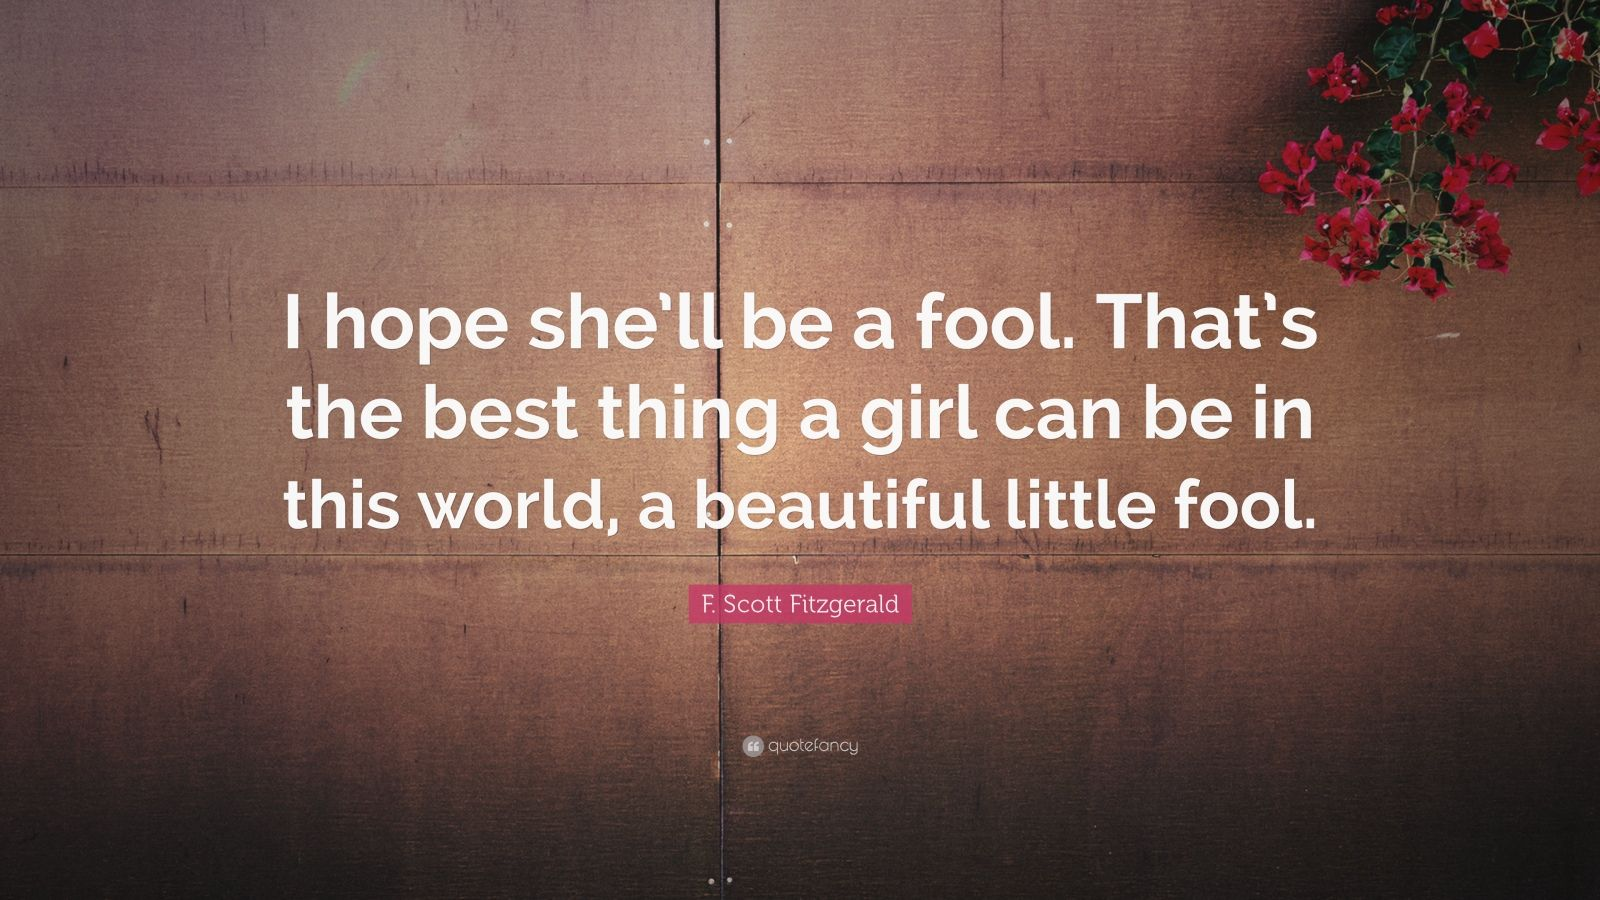 Great Gatsby Quote Wallpaper F Scott Fitzgerald Quote I Hope She Ll Be A Fool That